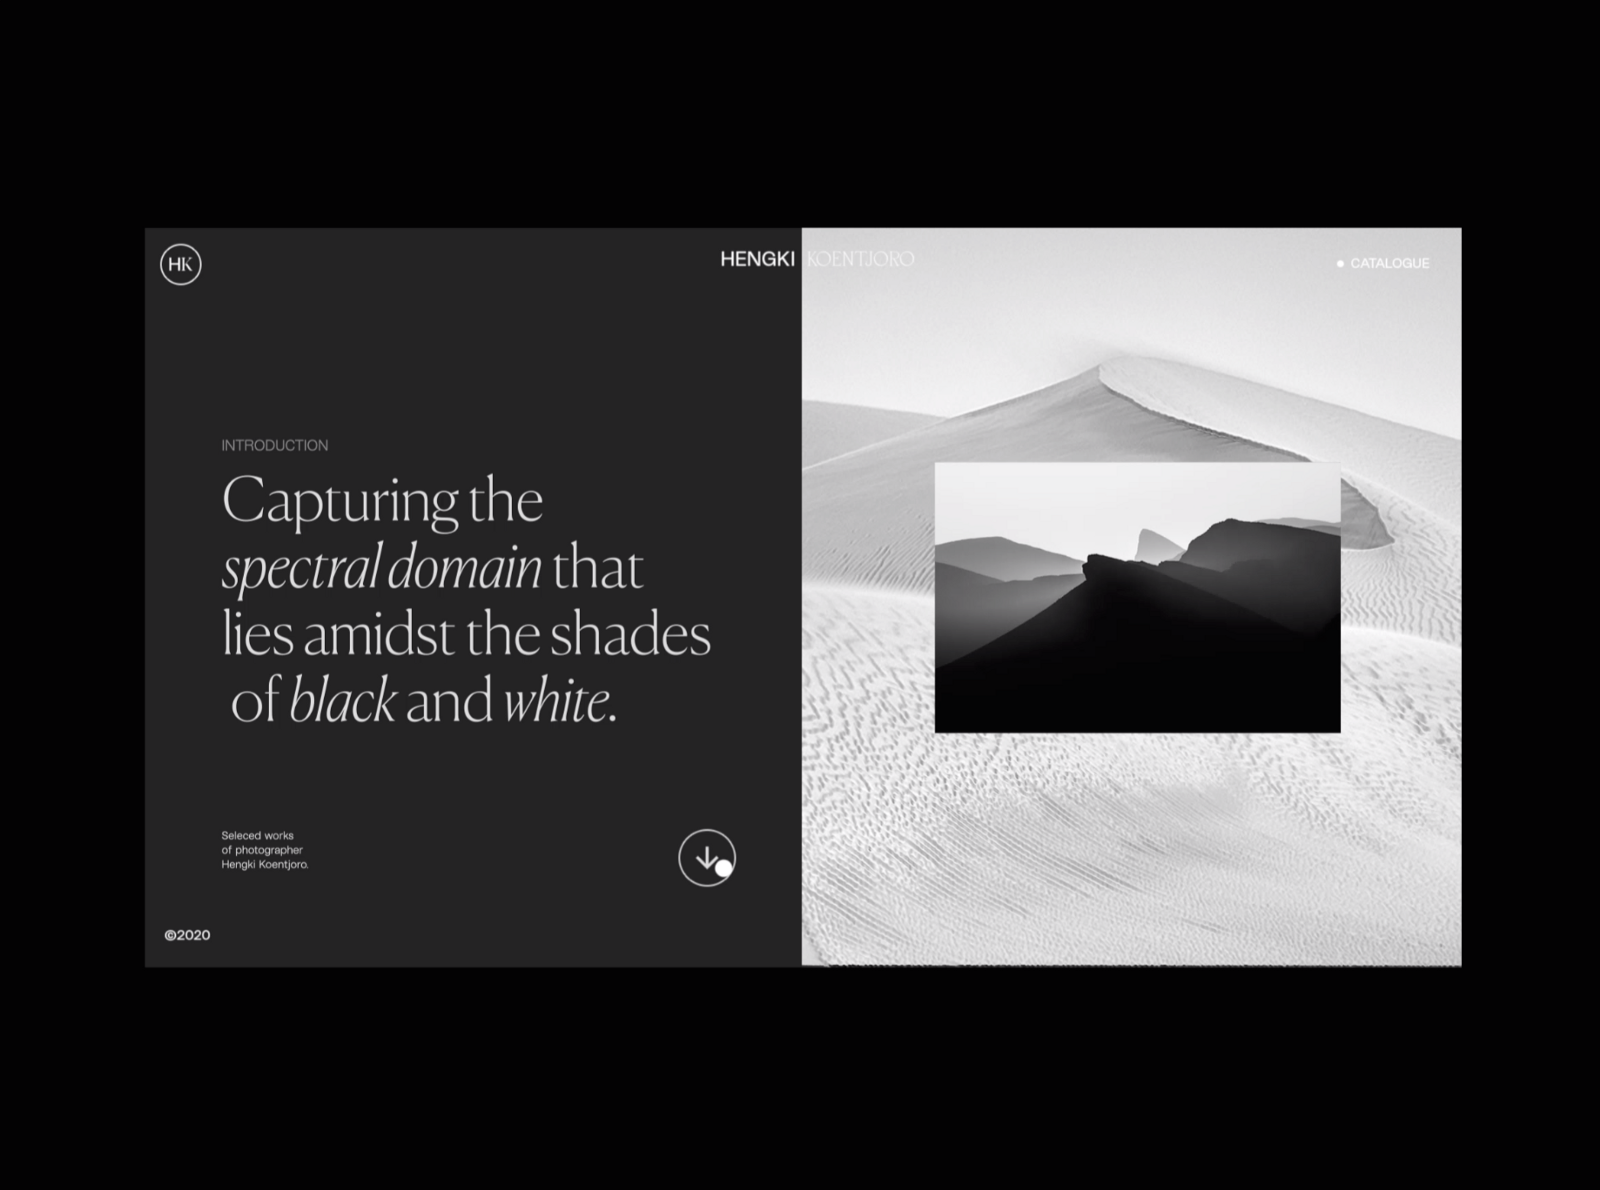 An example of using negative space to create visual hierarchy (Nathan Riley)